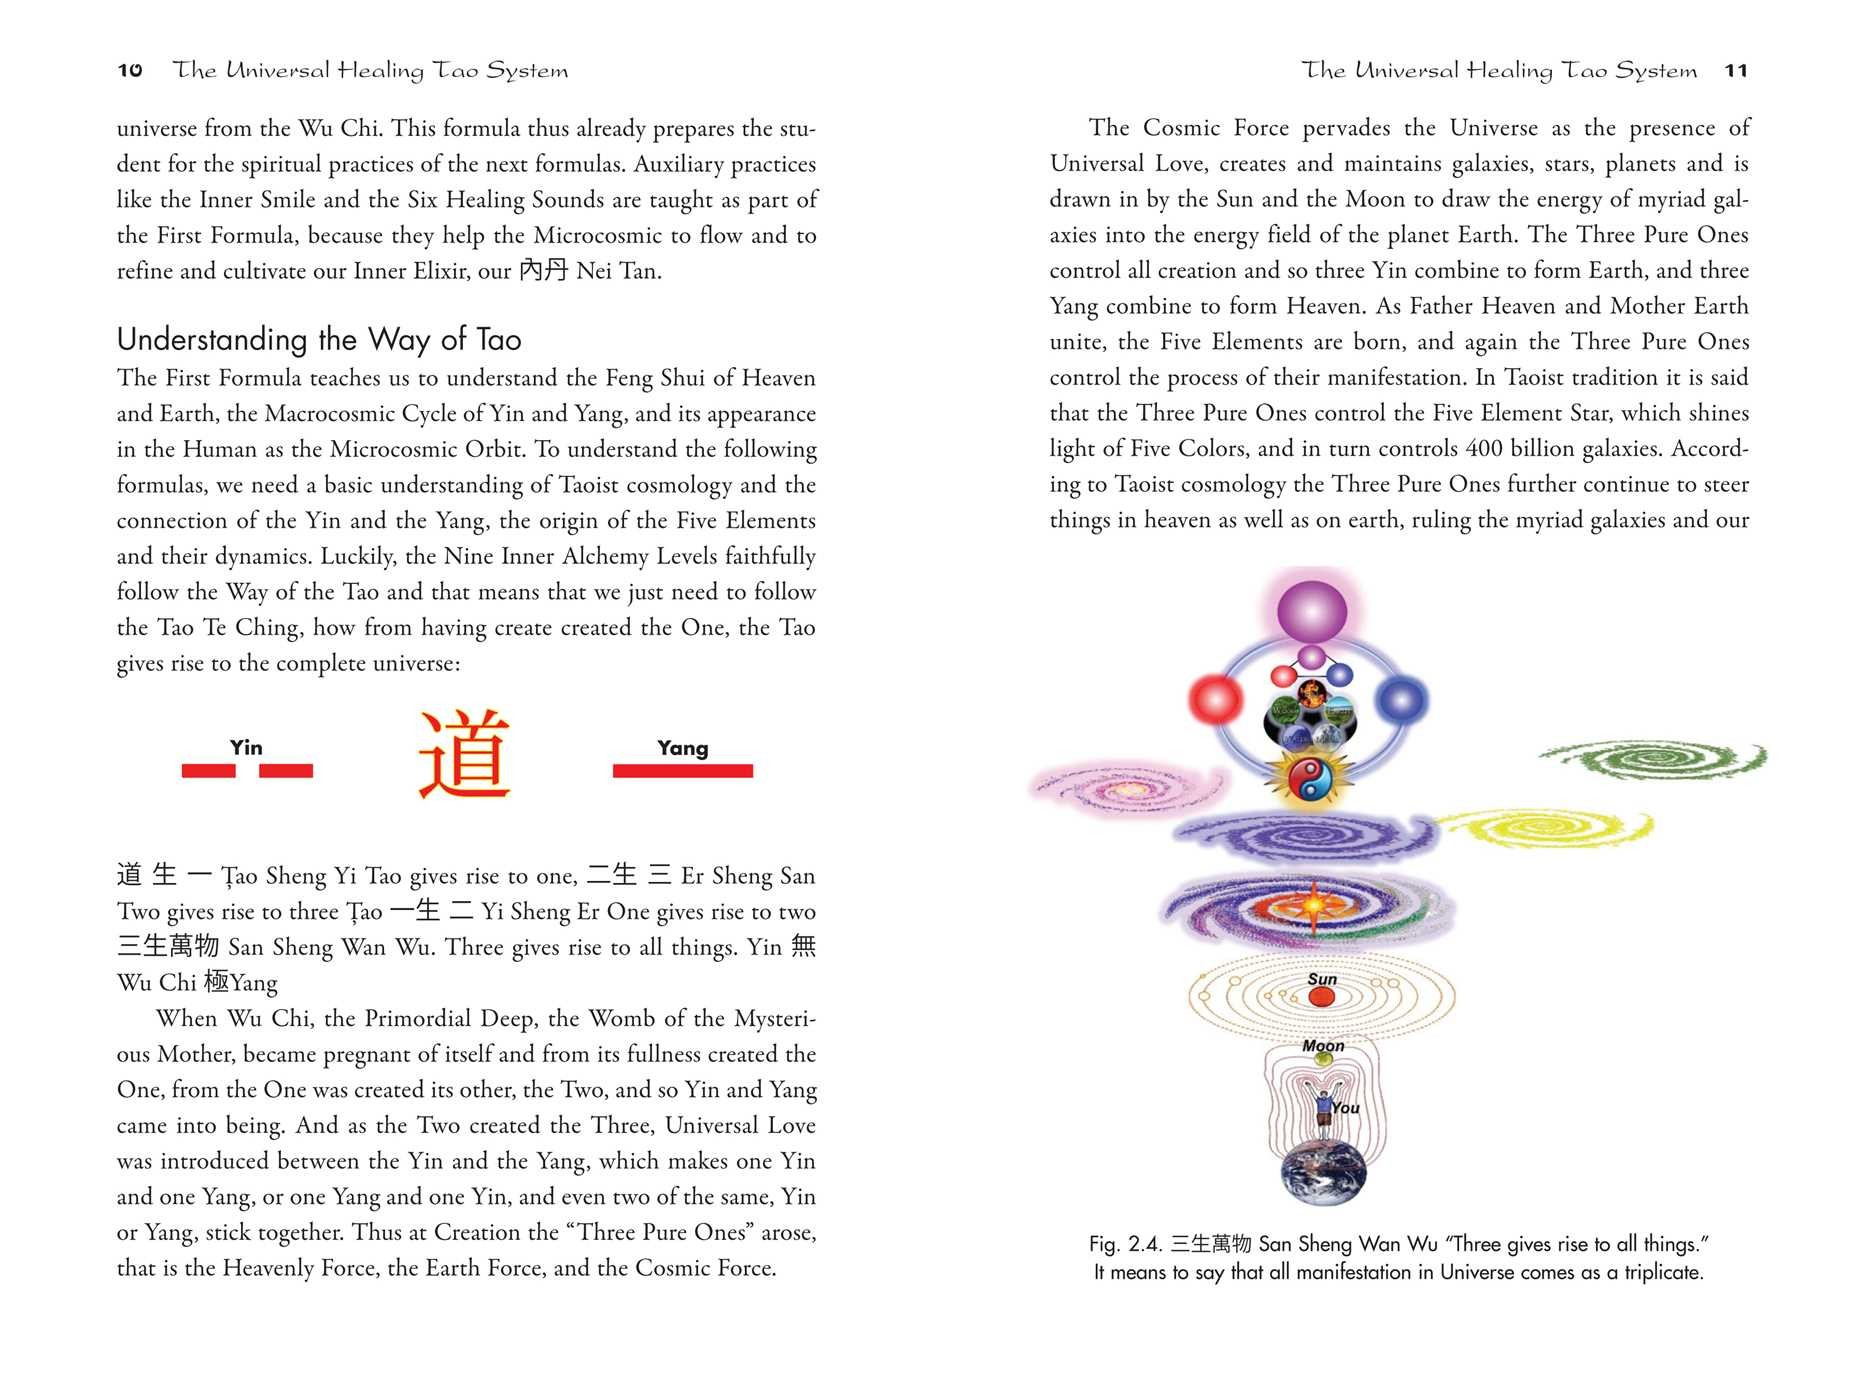 The tao of immortality 9781620556702.in04